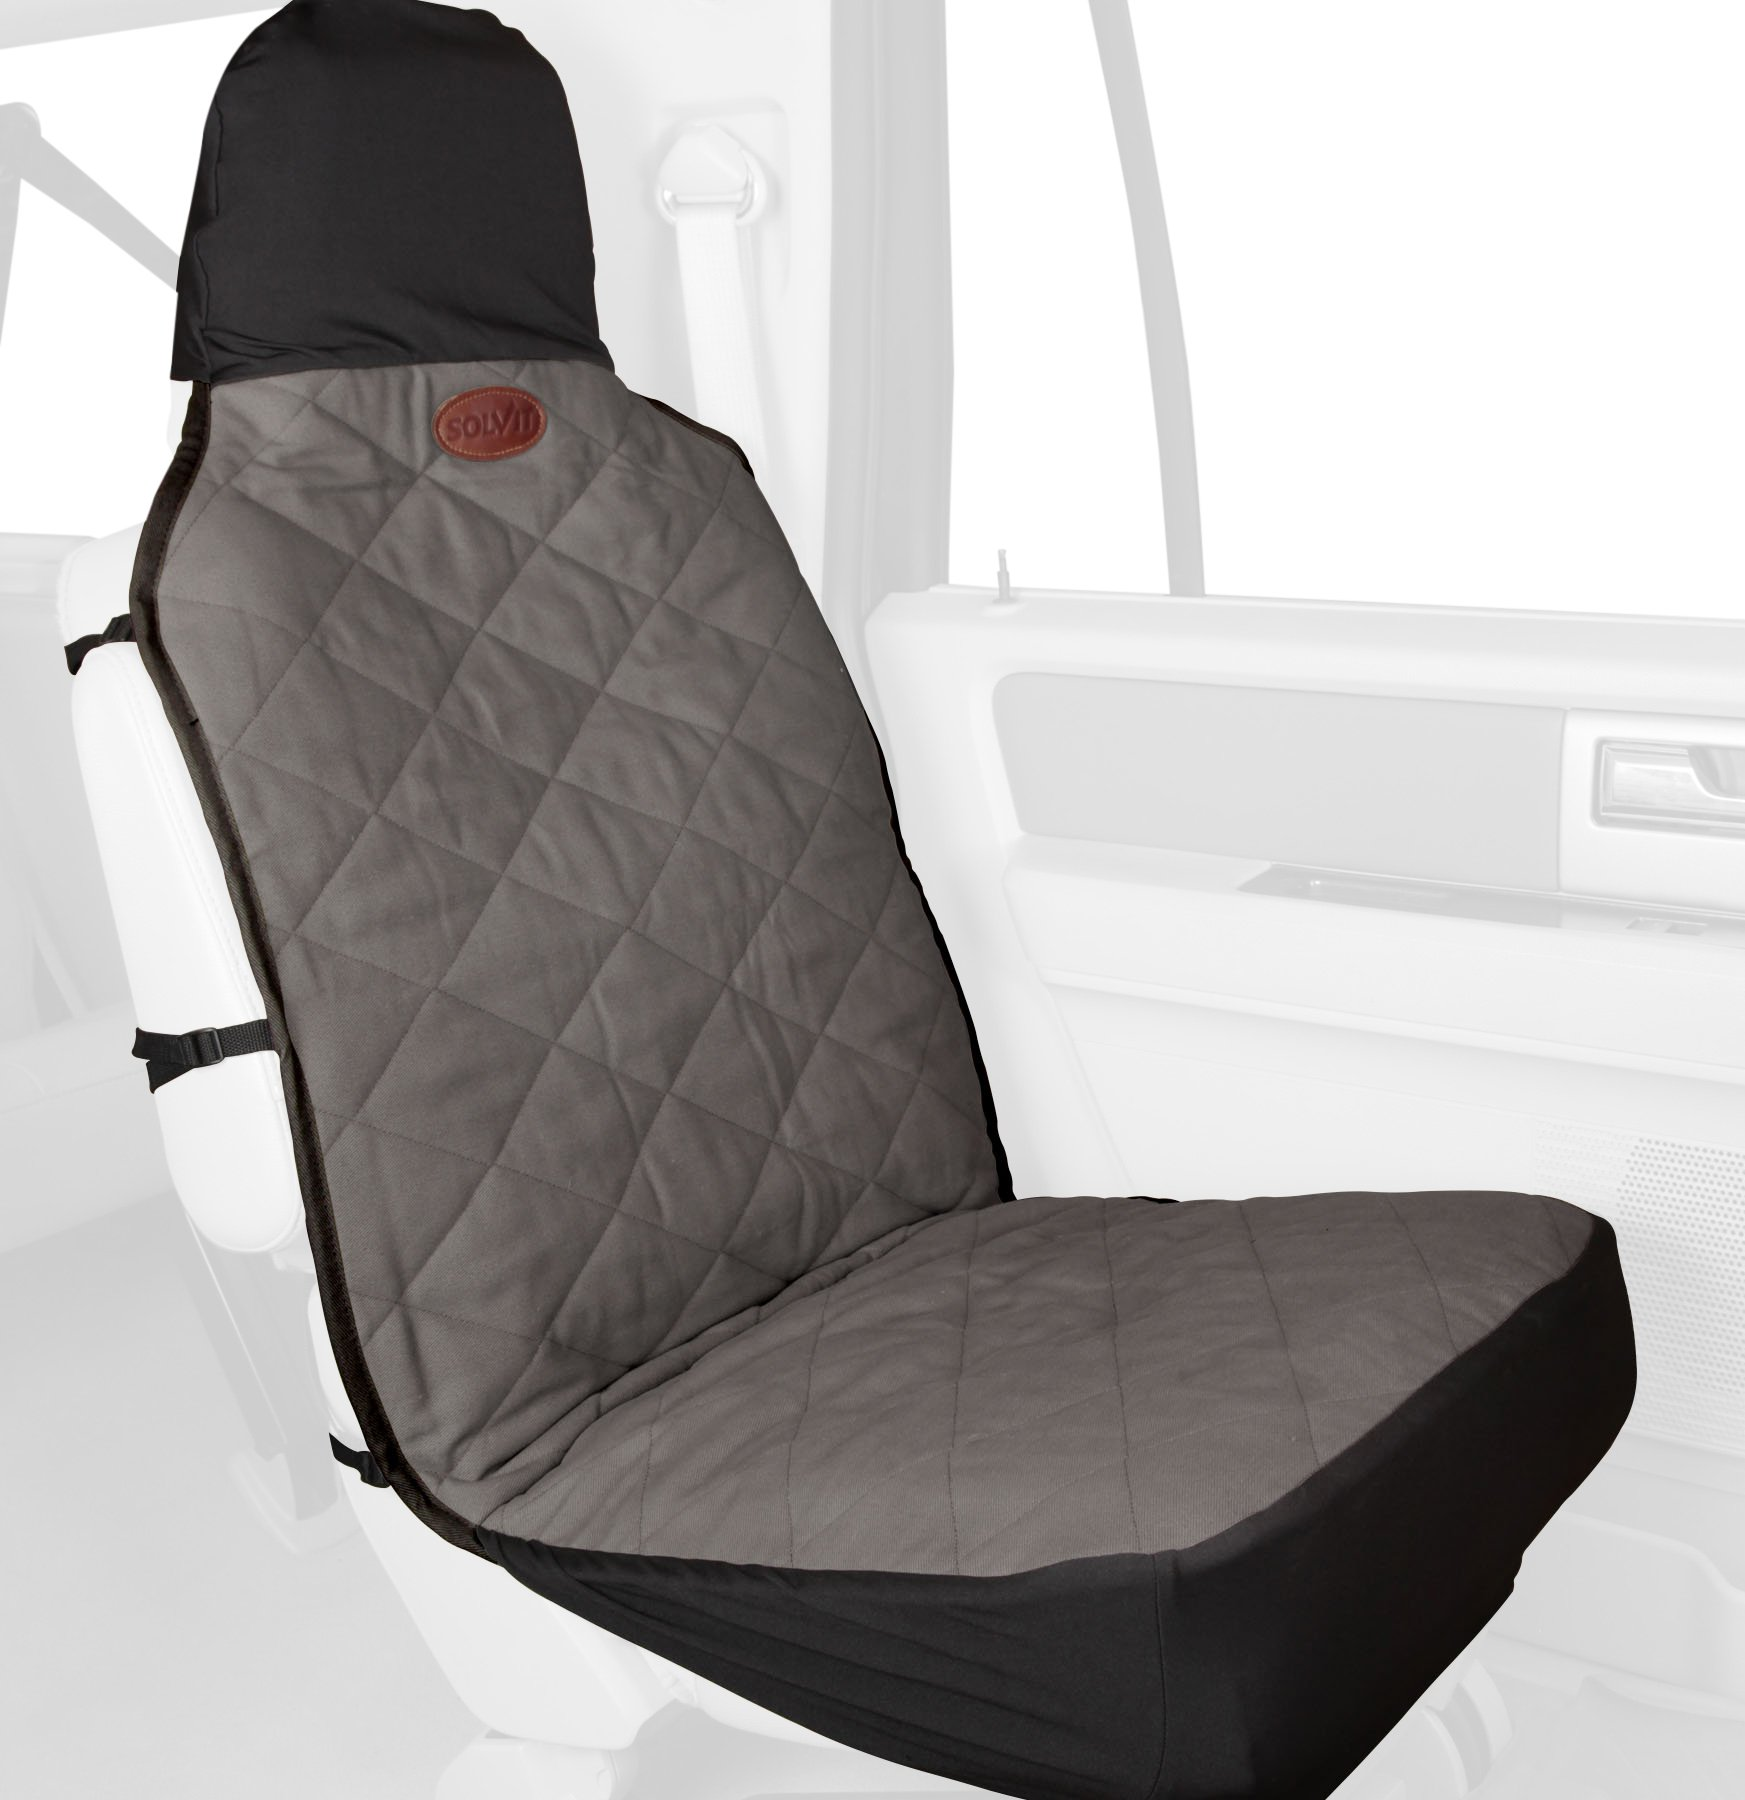 Solvit PetSafe Premium Bucket Pet Seat Cover, 52 in. L x 22 in. W, Gray, Waterproof Dog Car Seat Cover for Cars, Trucks and SUVs